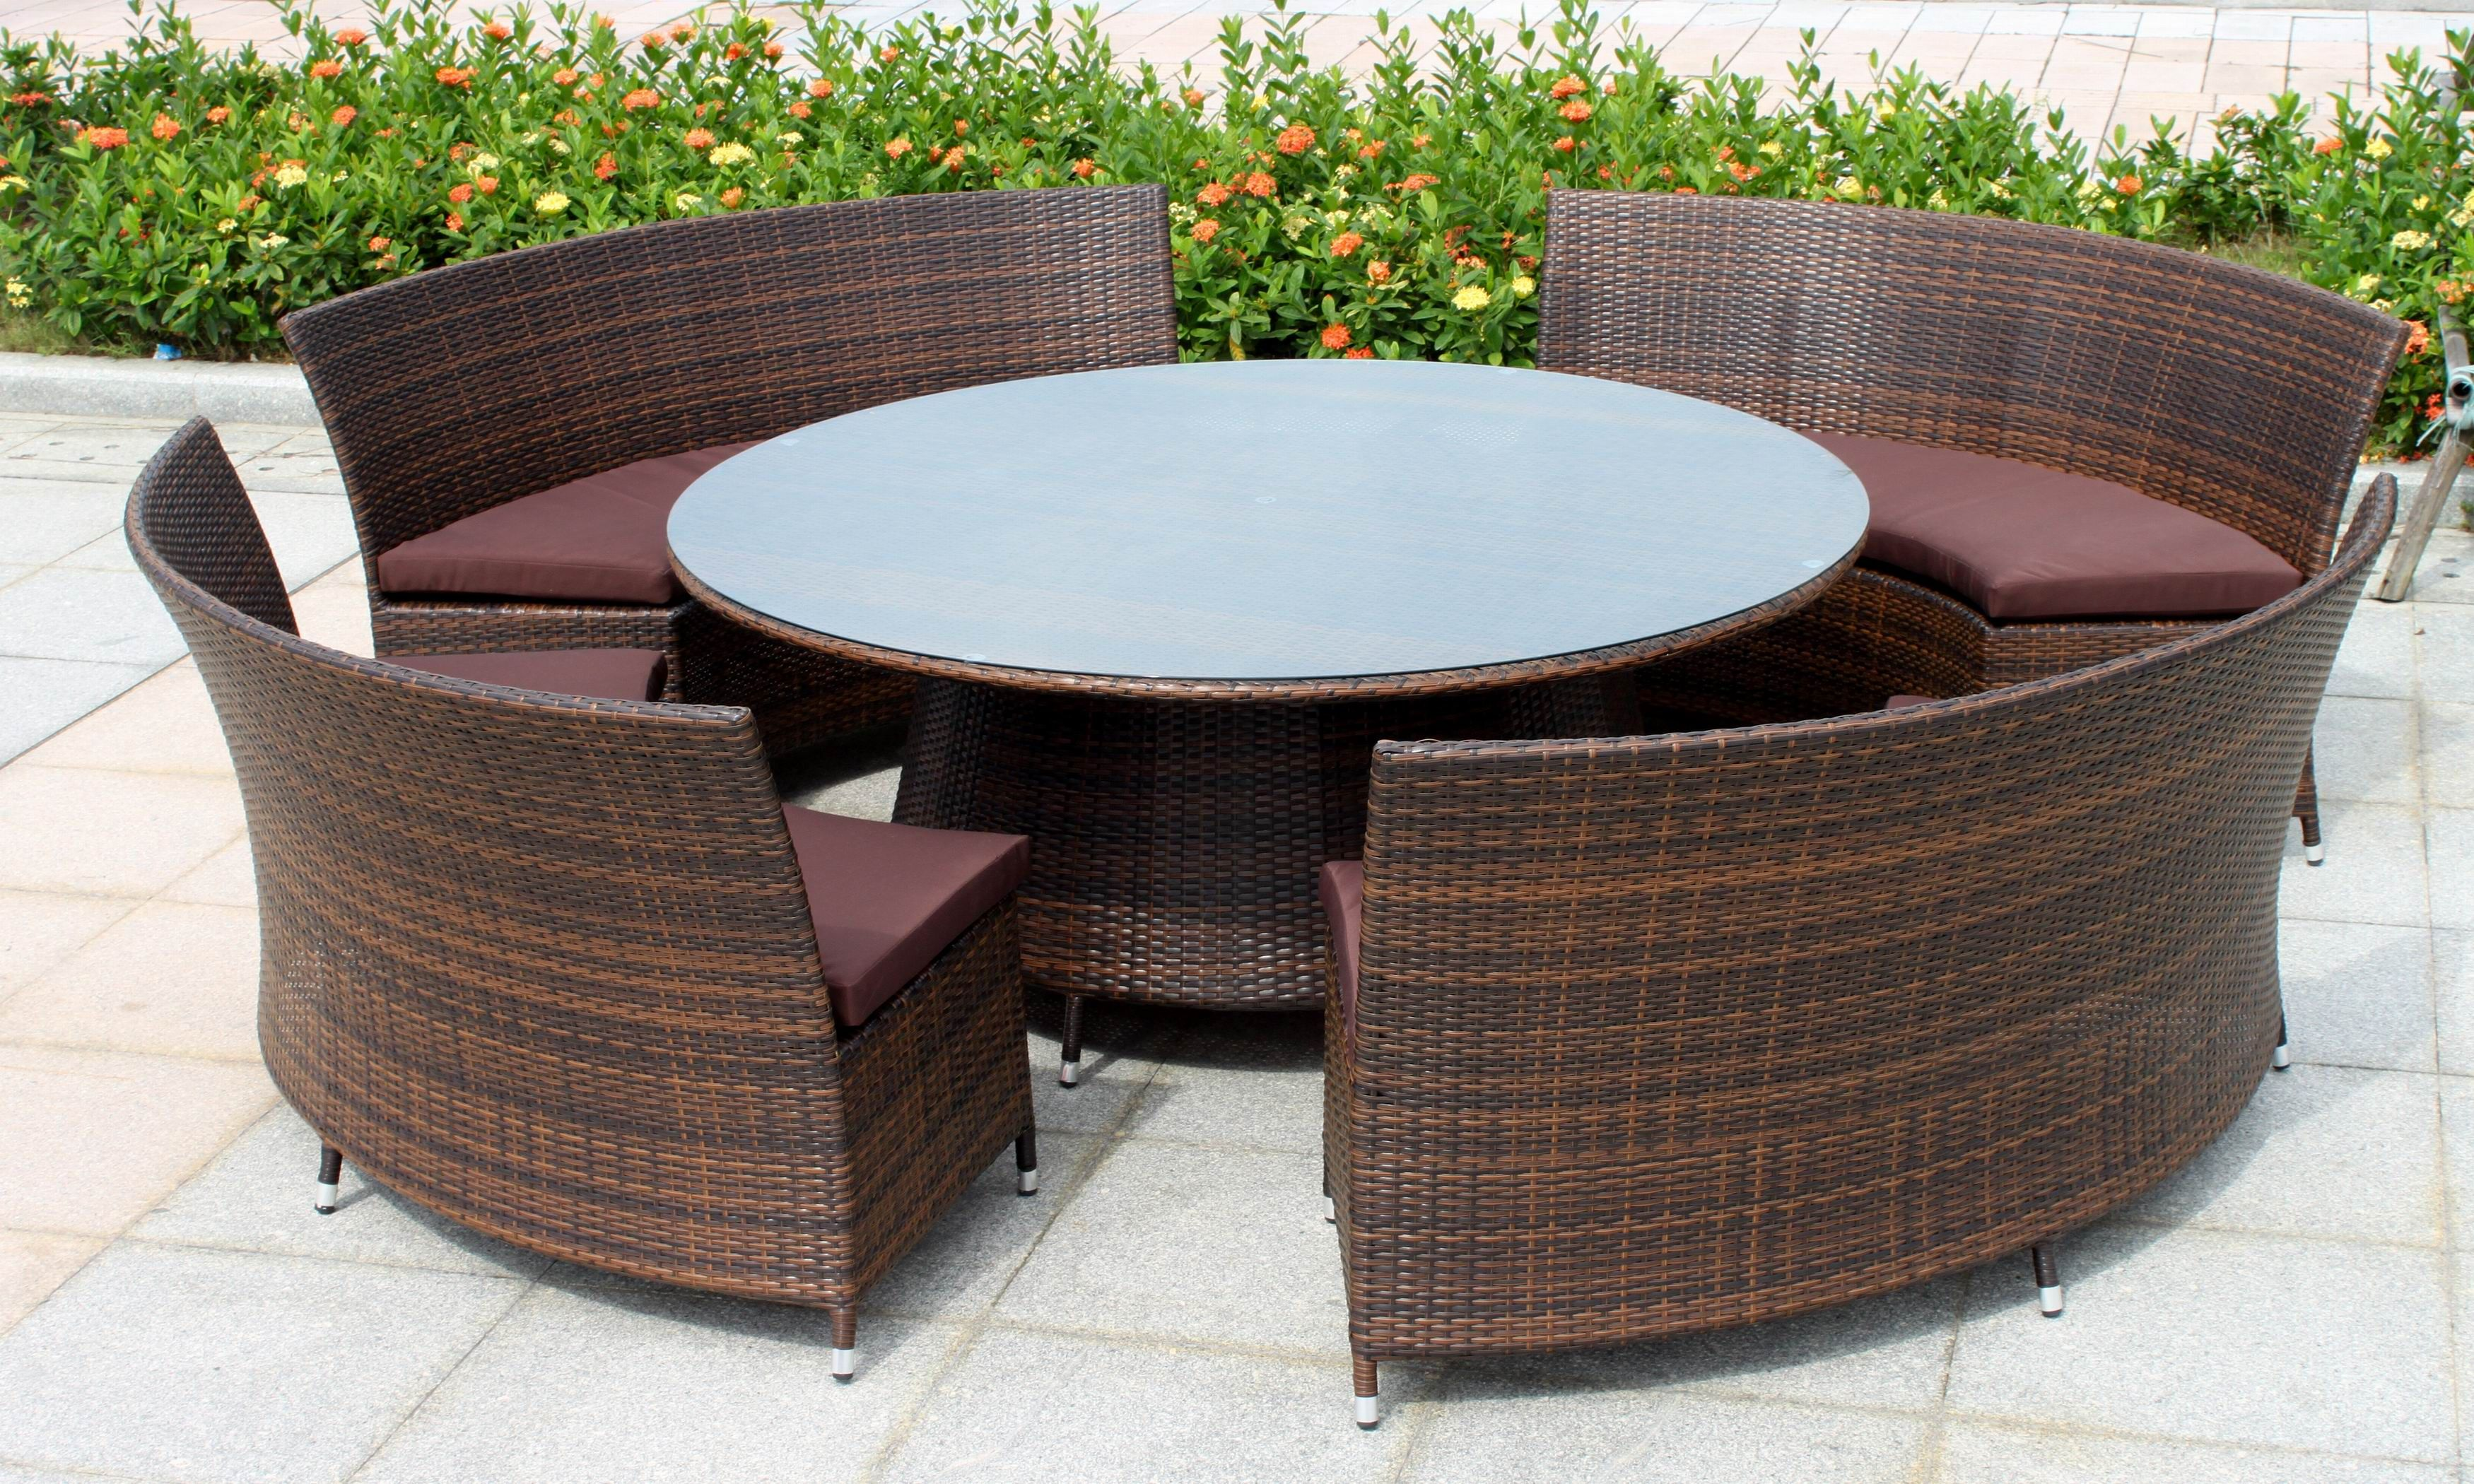 Permalink to Luxury Rattan Wicker Patio Furniture